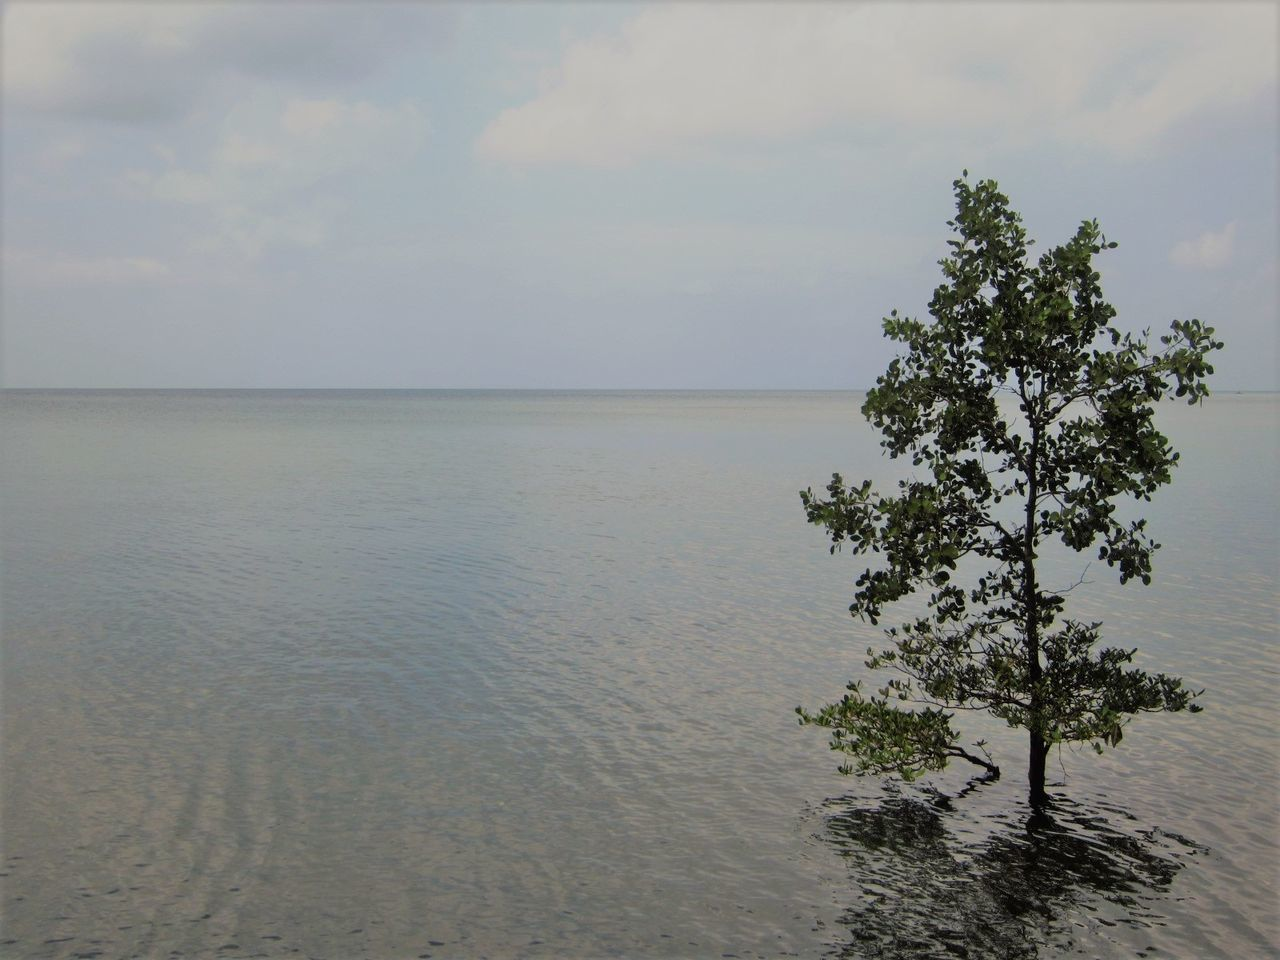 tide coming in Beauty In Nature Calmness Climate Change Horizon Over Water Sea Serenity Tranquility Tree